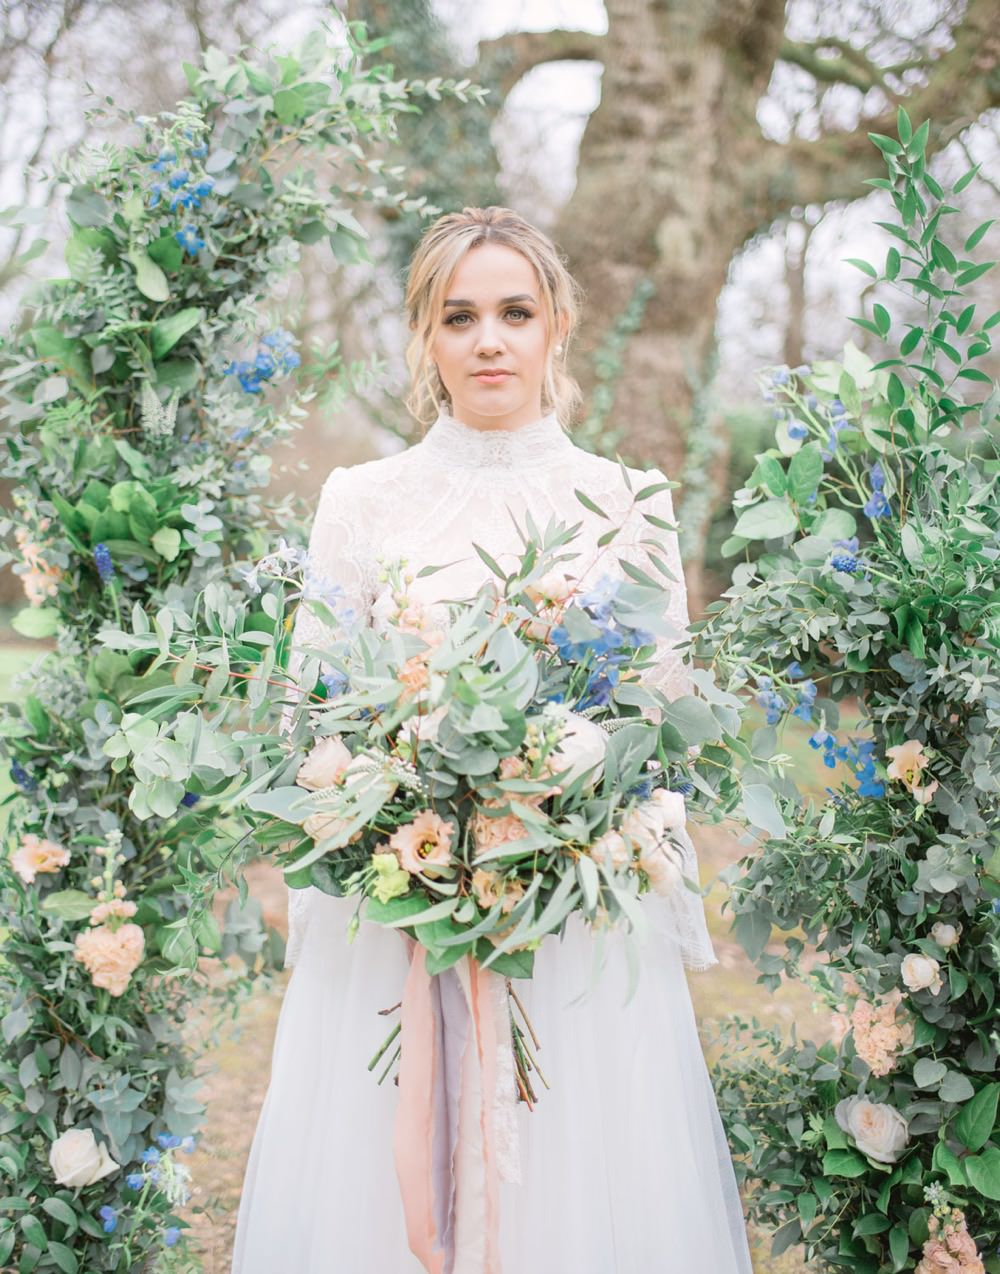 bride holding oversized wedding bouquet in front of deconstructed floral arch for wedding ceremony